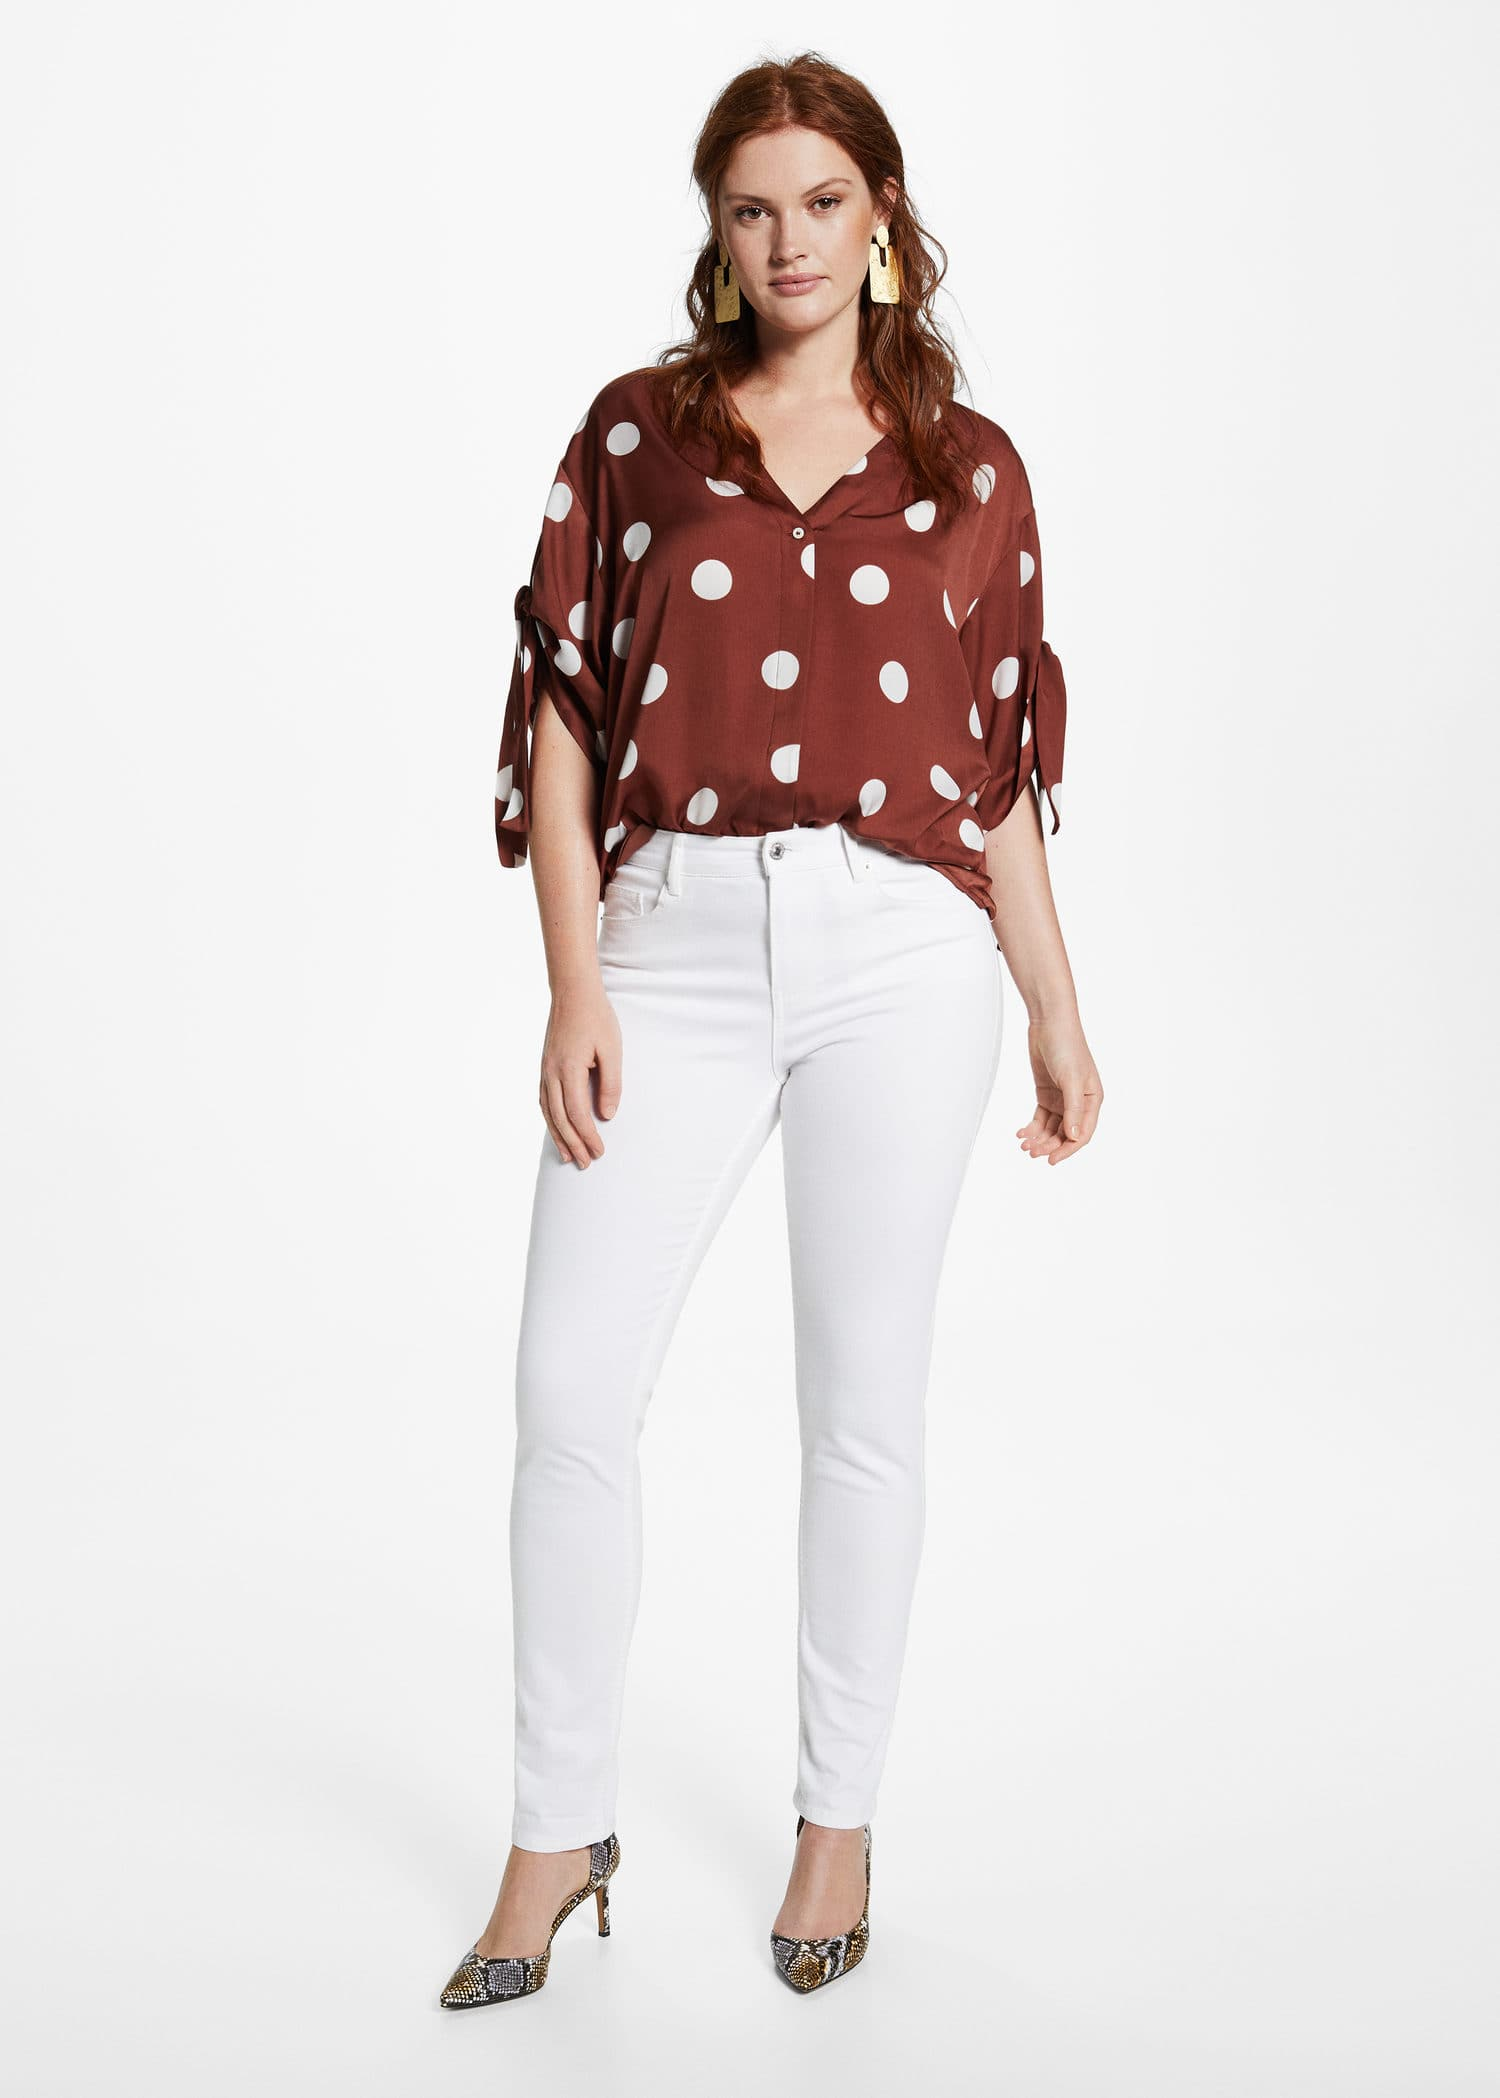 Slim fit julie jeans Plus sizes OUTLET Pays-Bas  OUTLET Netherlands